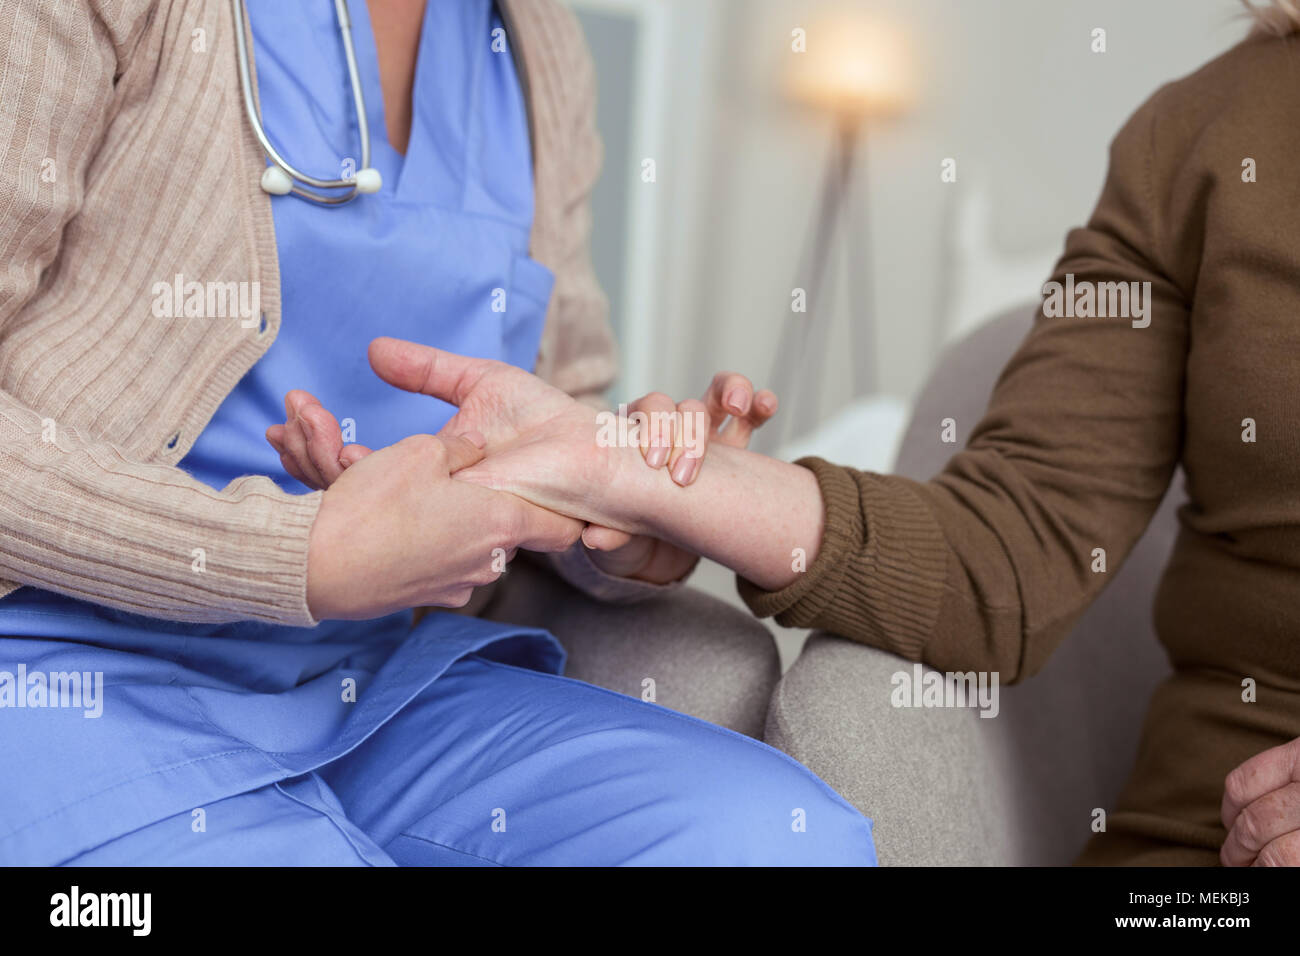 Young female hands noting pulse - Stock Image